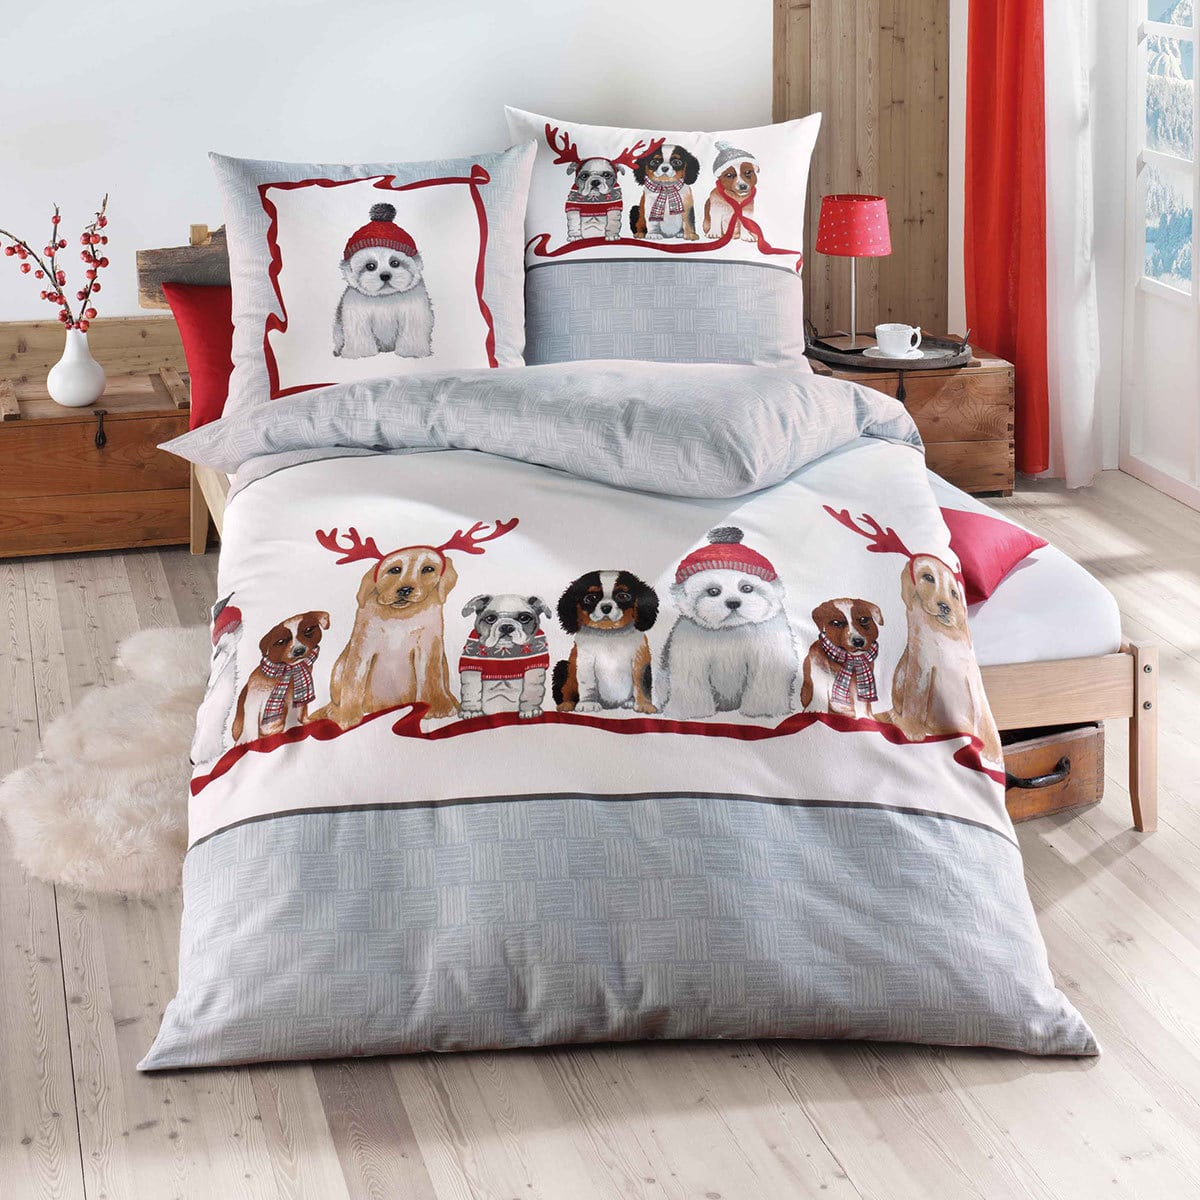 traumschlaf biber bettw sche dogs g nstig online kaufen bei bettwaren shop. Black Bedroom Furniture Sets. Home Design Ideas